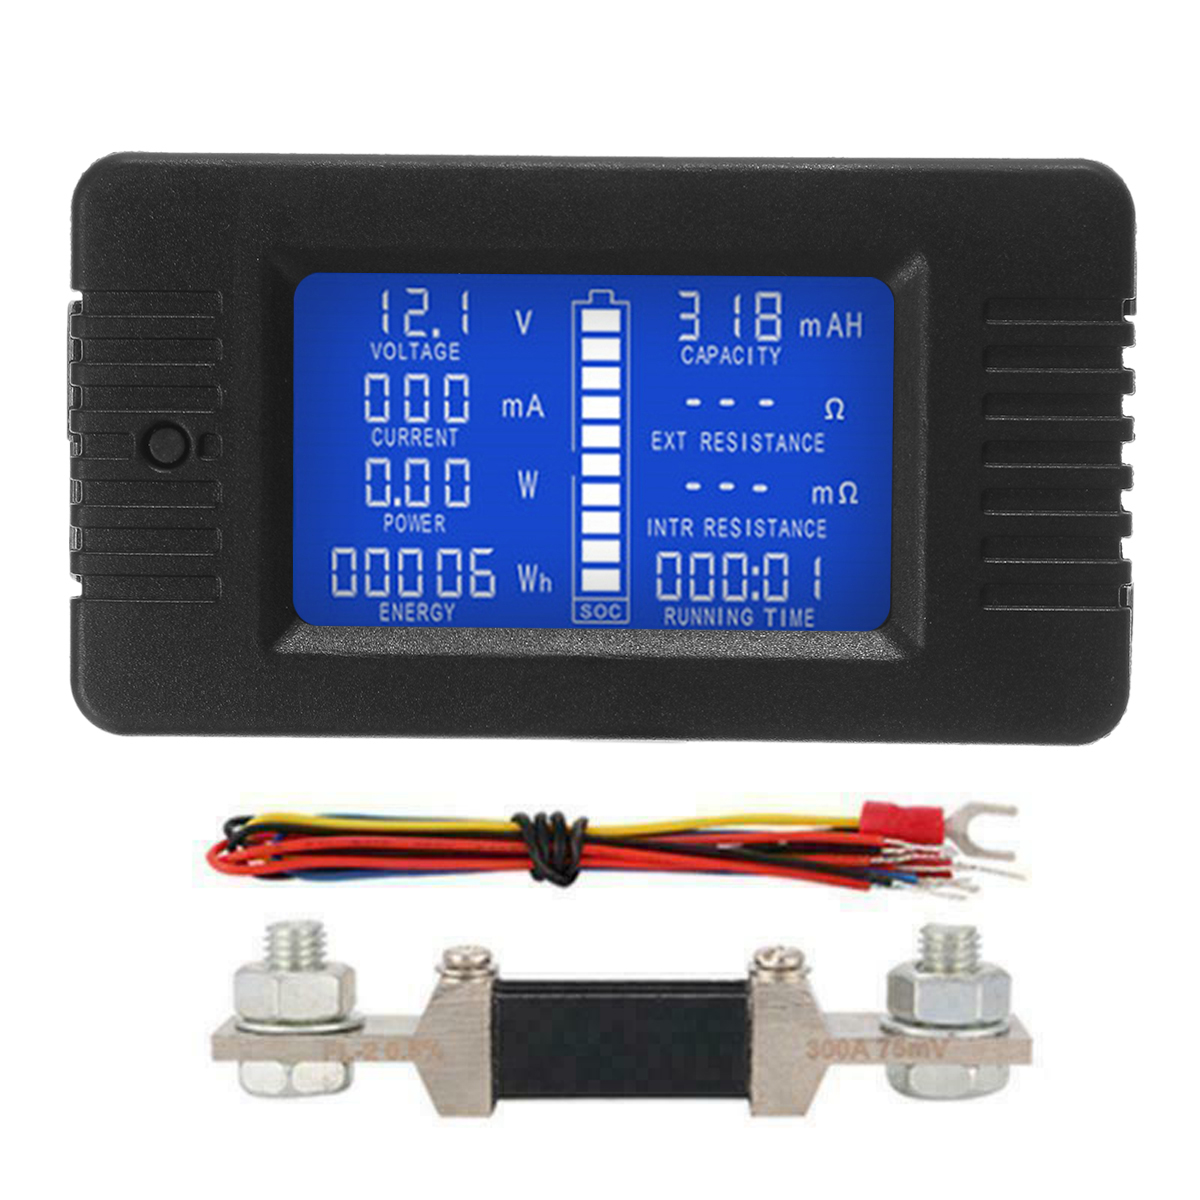 USB LCD Detector Voltmeter Ammeter Power Capacity Battery Current Meter Test Bs